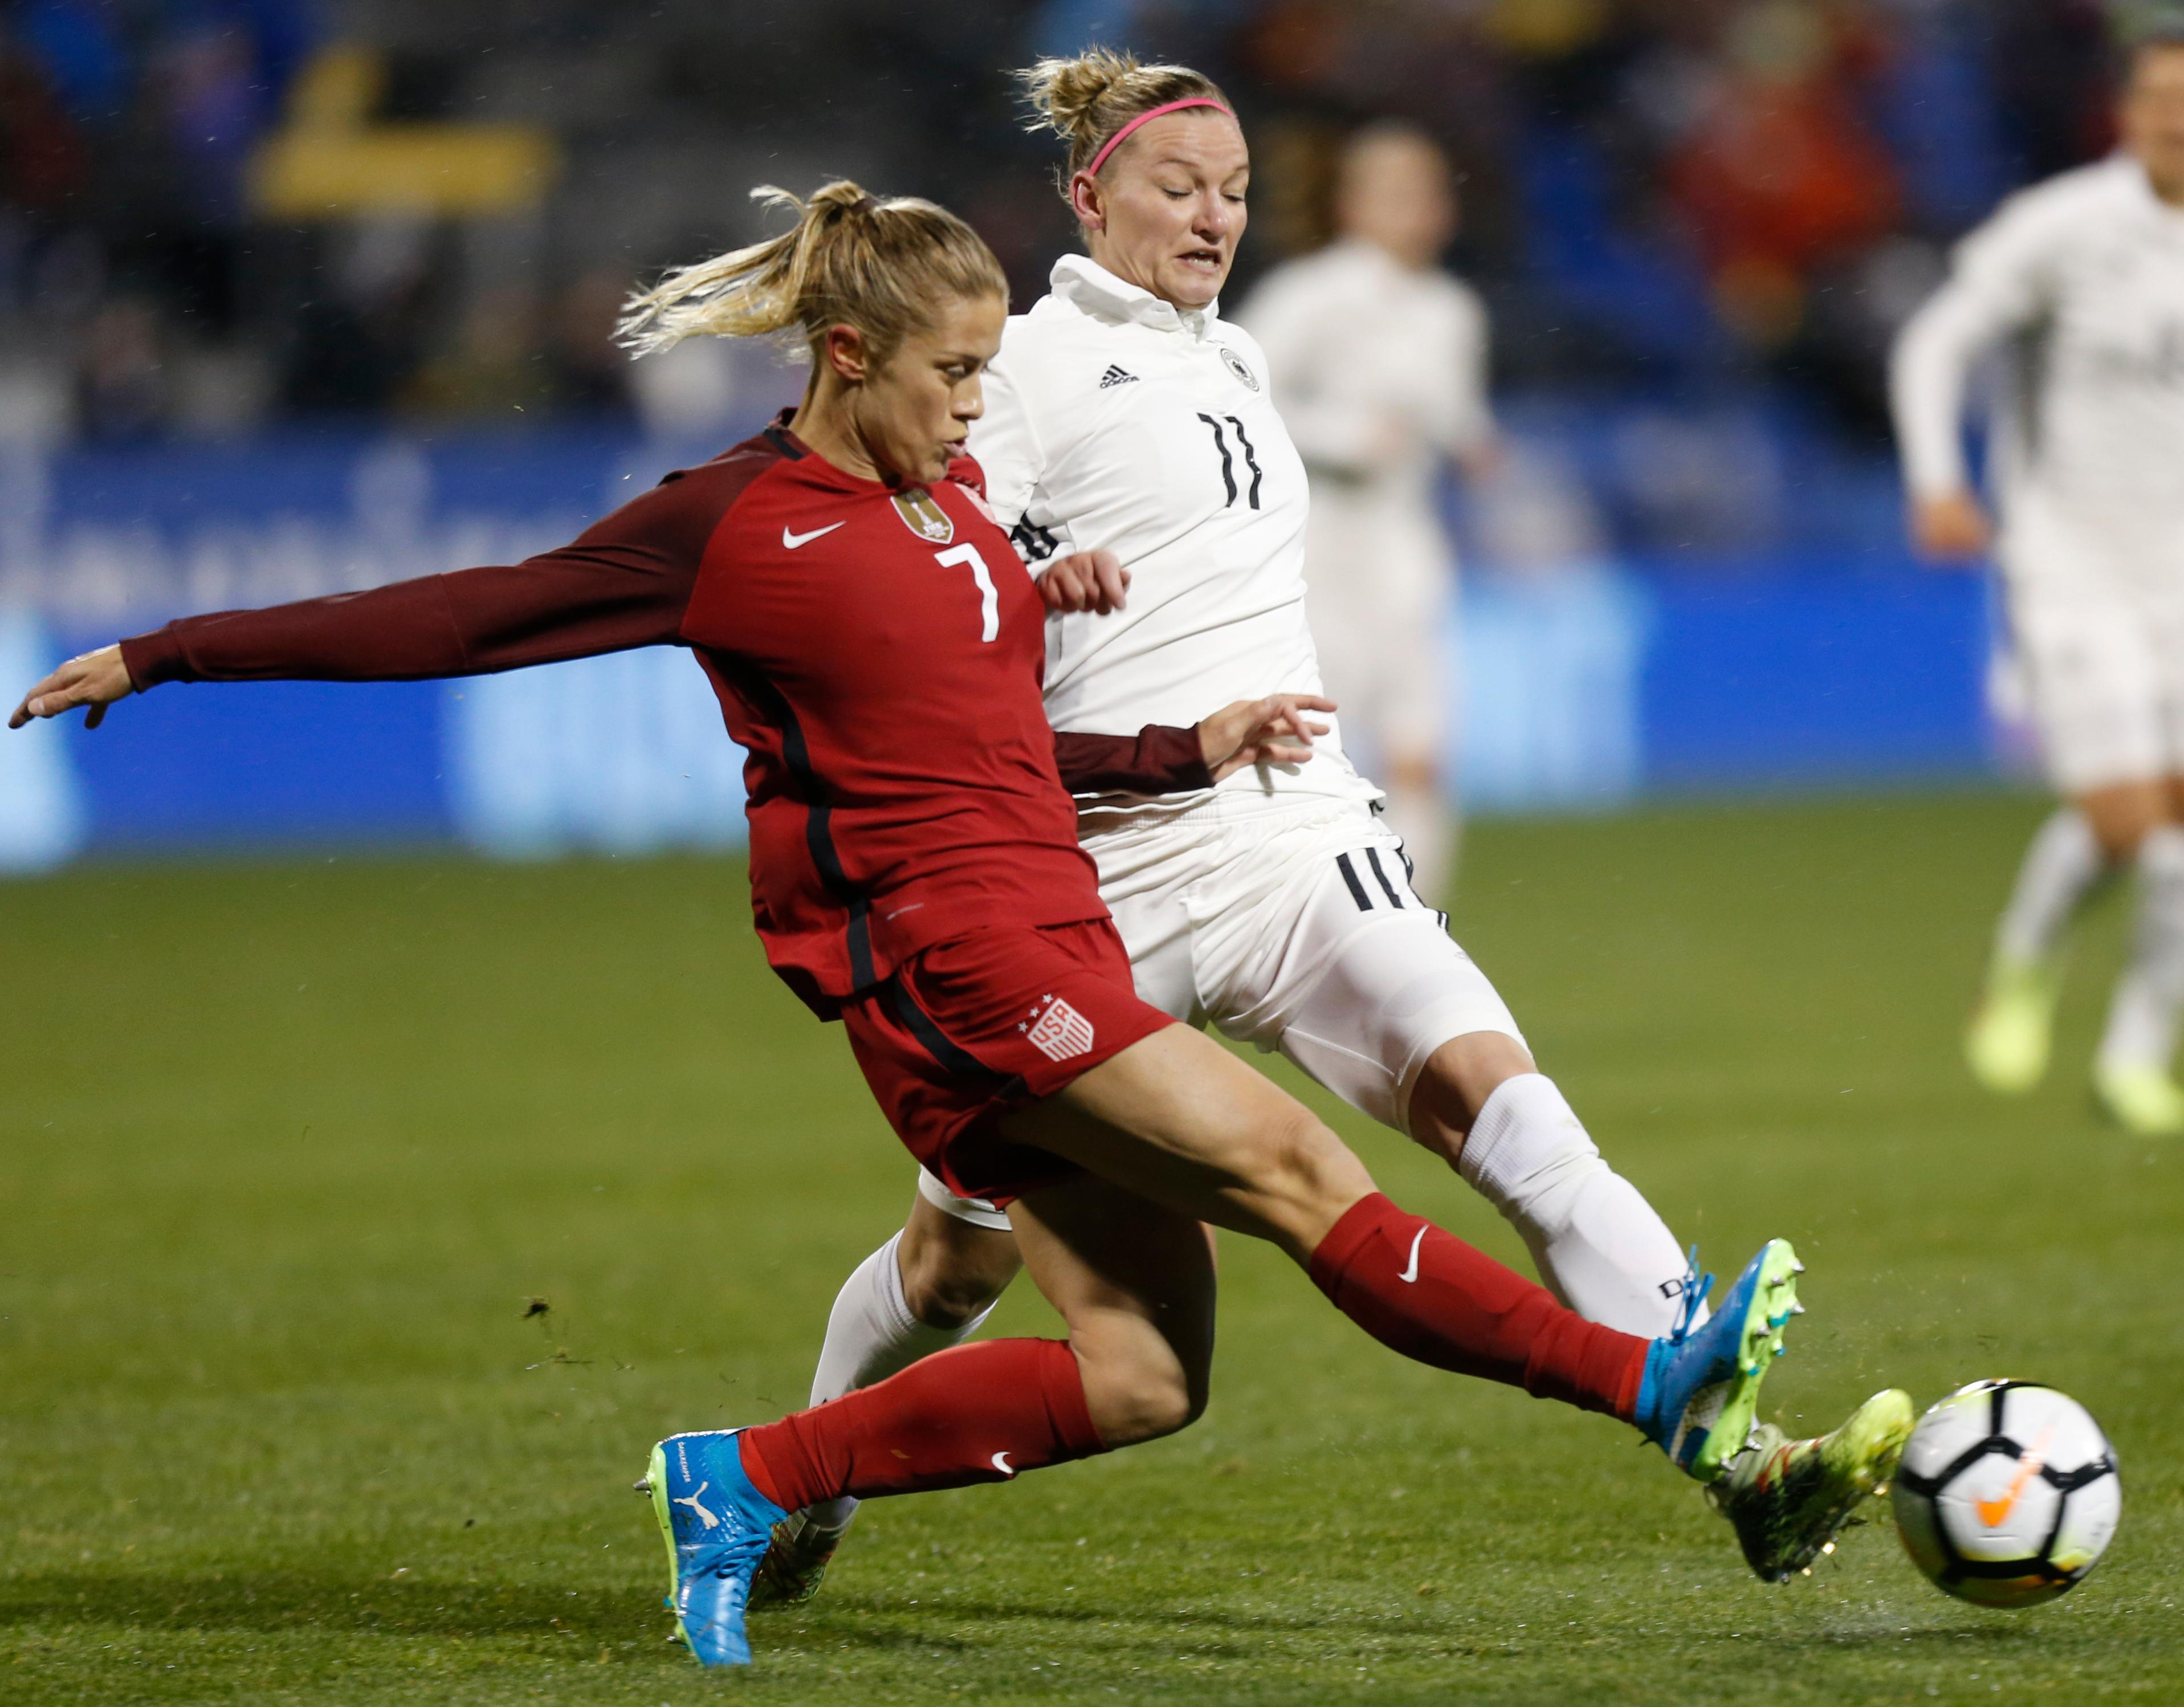 United States' Abby Dahlkemper, left, tries to clear the ball away from Germany's Alexandra Popp during the first half of a SheBelieves Cup women's soccer match Thursday, March 1, 2018, in Columbus, Ohio. (AP Photo/Jay LaPrete)